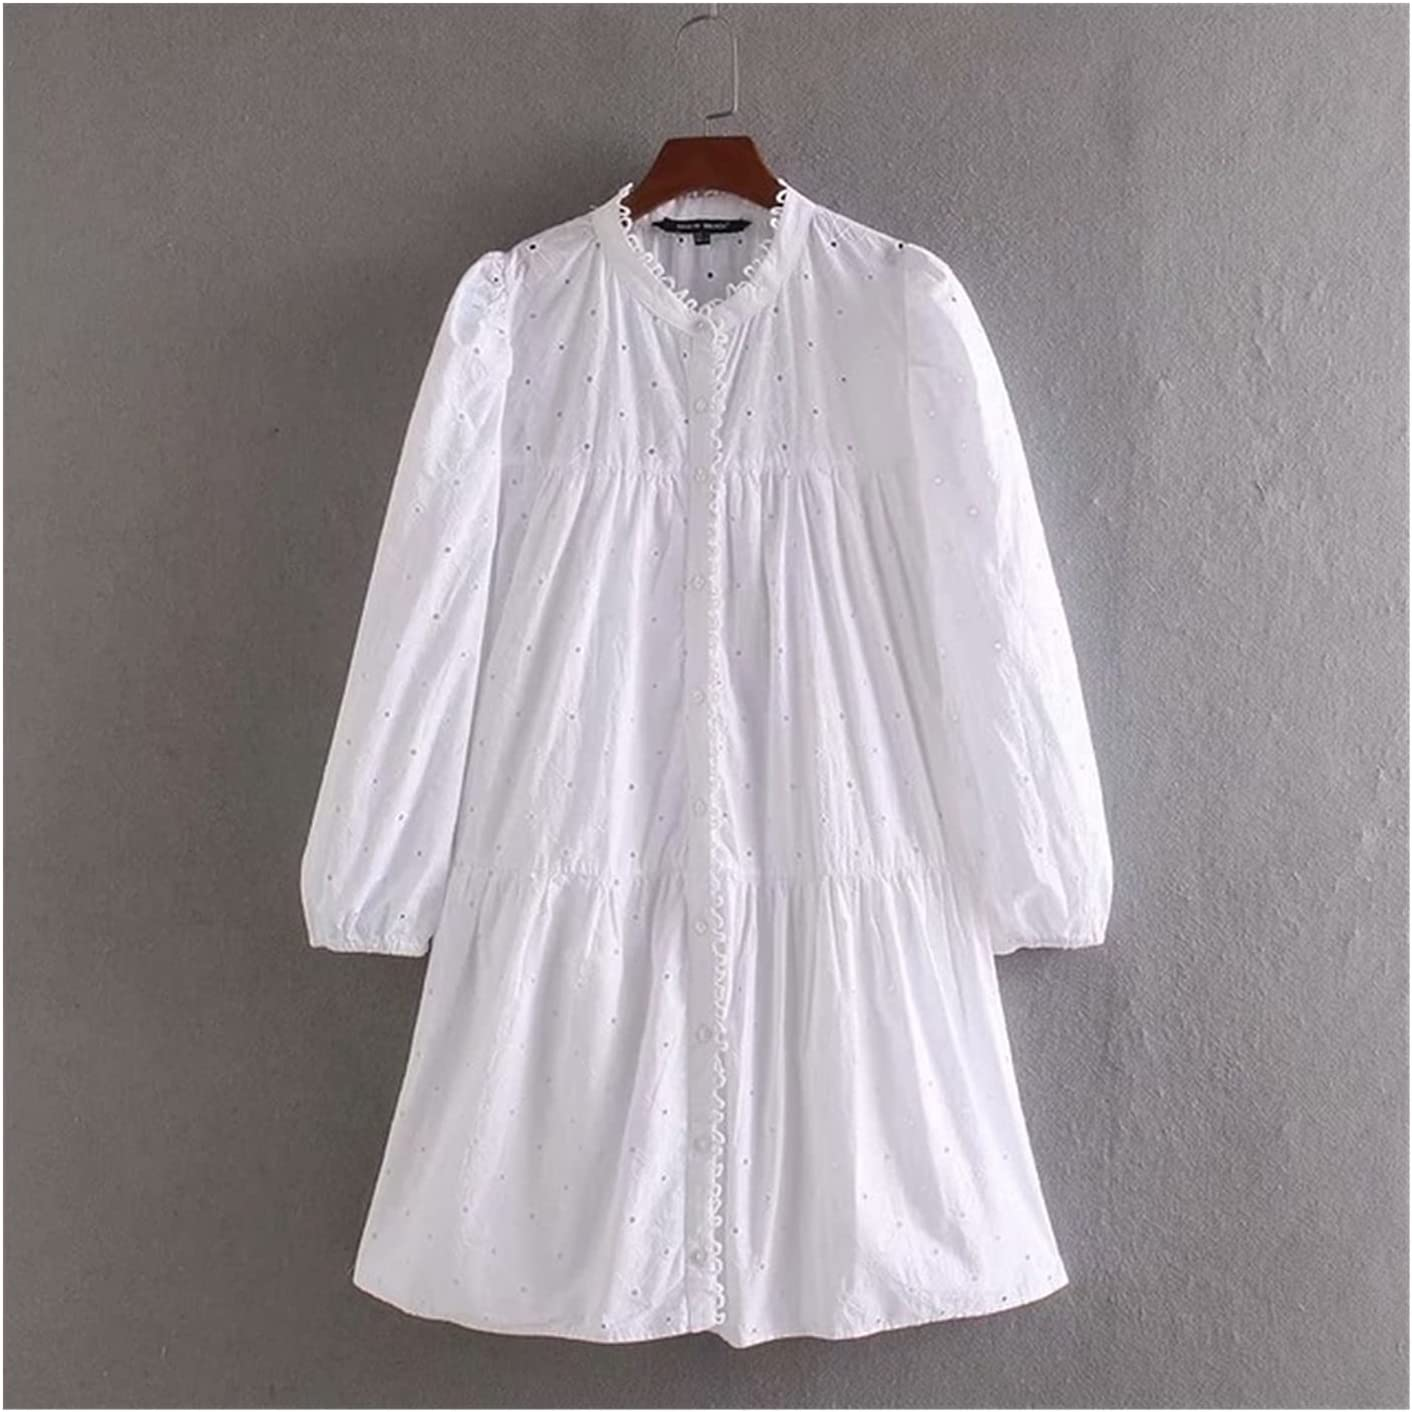 XINGHUIJPN Female Elegant Hollow Embroidery specialty shop S Casual Choice Shirt White